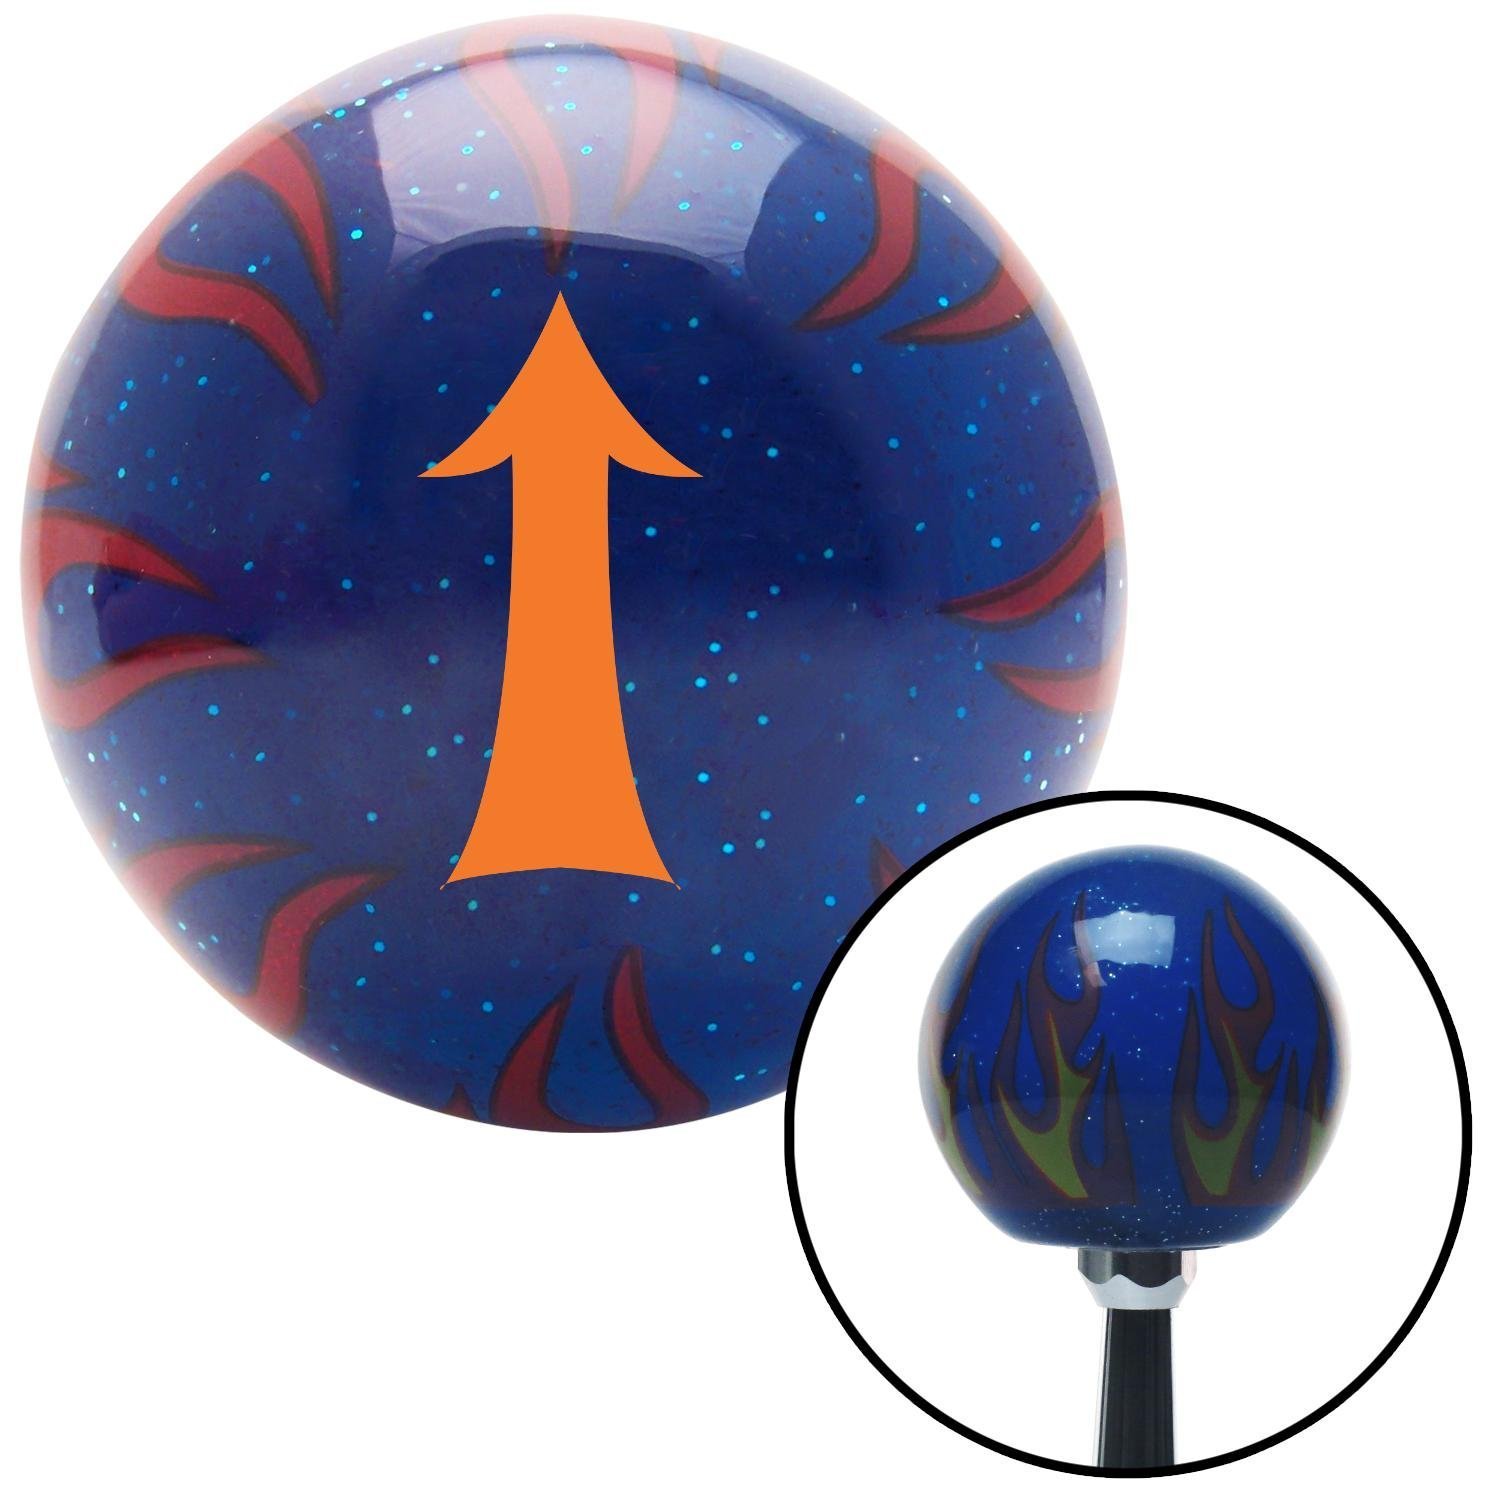 Orange Fancy Solid Directional Arrow Up American Shifter 244475 Blue Flame Metal Flake Shift Knob with M16 x 1.5 Insert